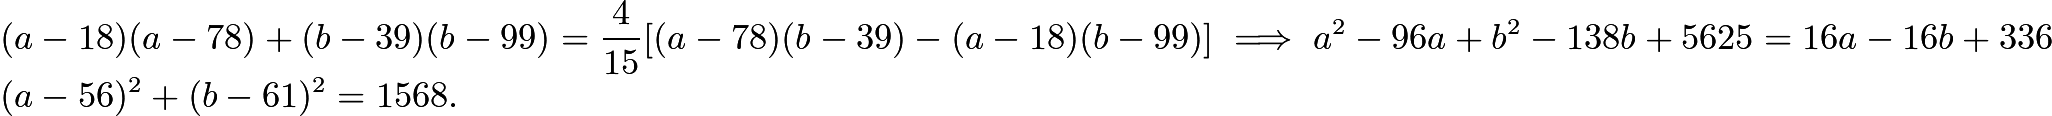 $(a-18)(a-78)+(b-39)(b-99)=\frac{4}{15}[(a-78)(b-39)-(a-18)(b-99)] \implies a^2-96a+b^2-138b+5625=16a-16b+336 \\ (a-56)^2+(b-61)^2=1568.$